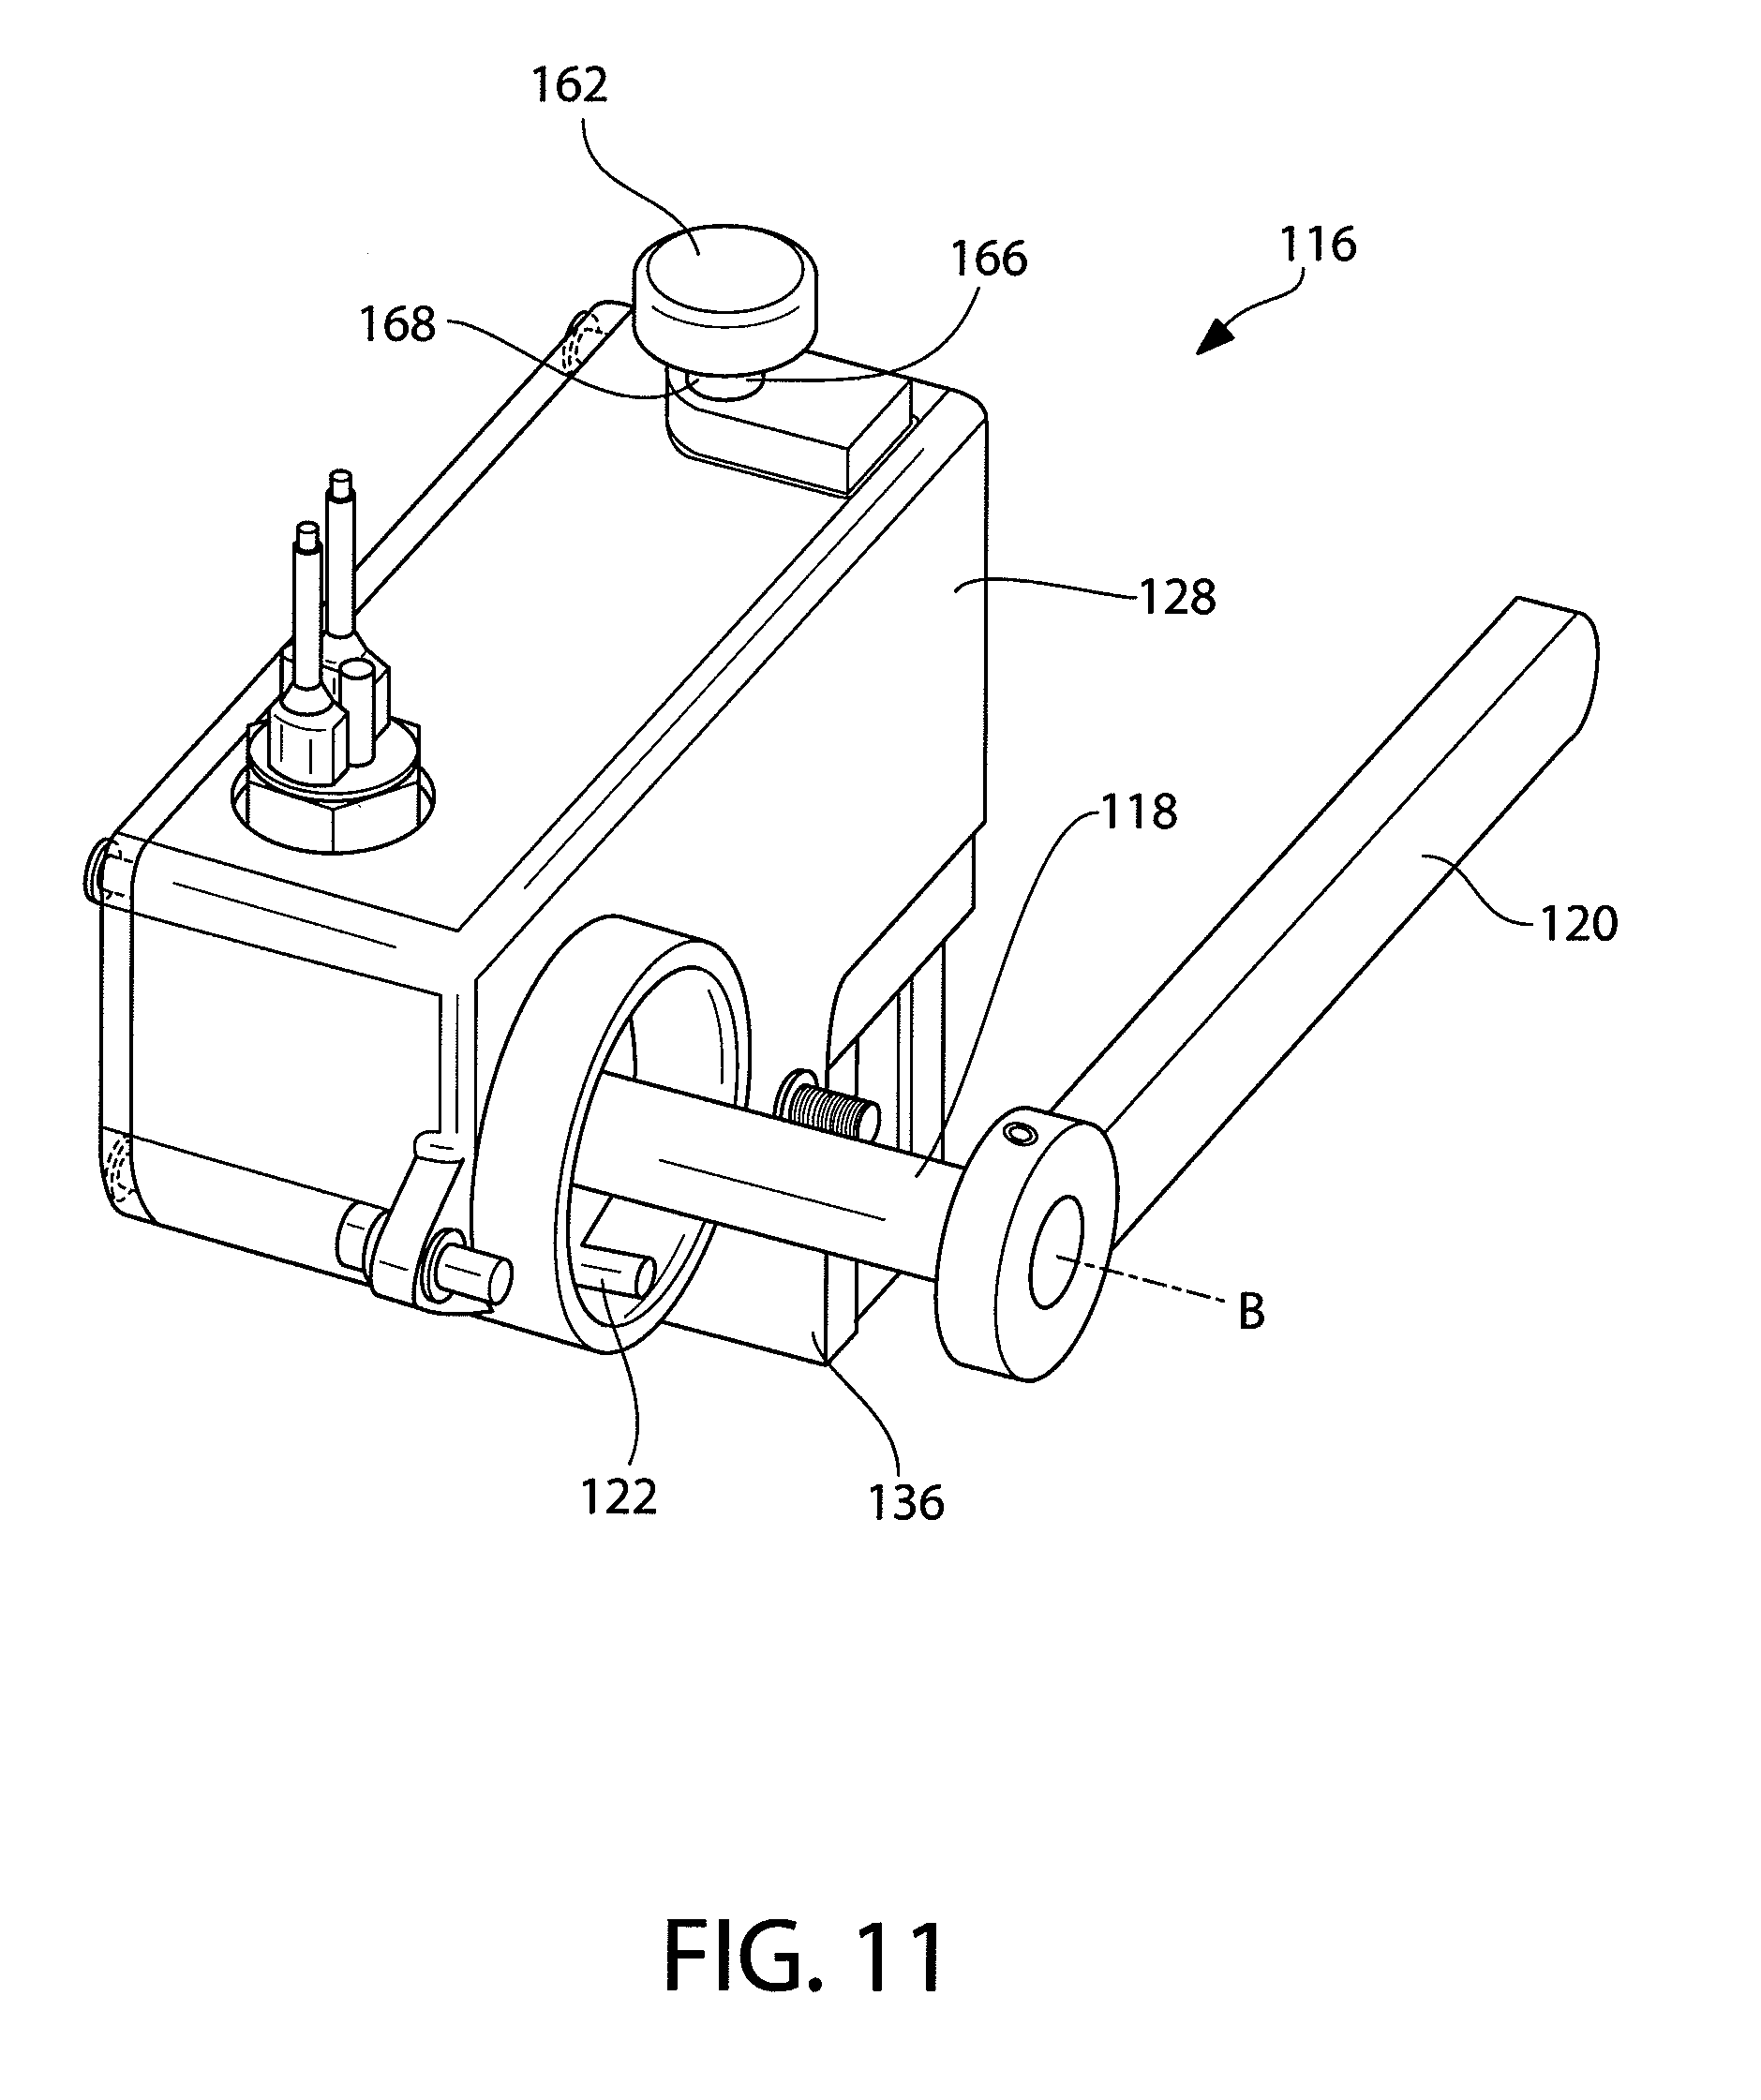 US20130068972A1 20130321 D00011 patent us20130068972 air shutoff swing gate valve google patents roda deaco valve wiring diagram at bayanpartner.co